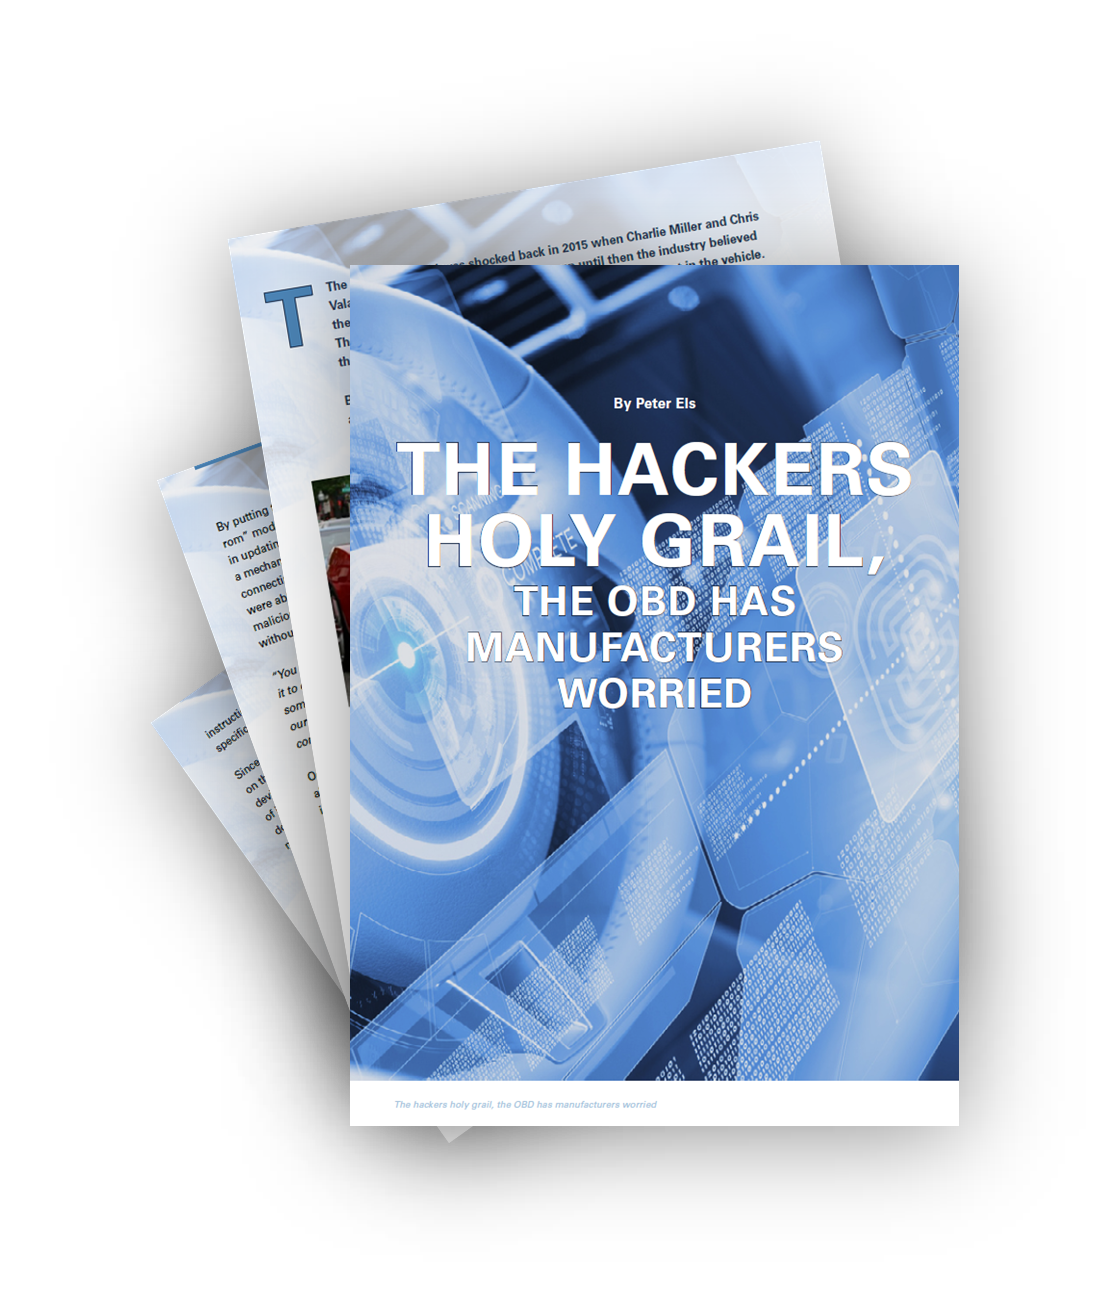 The Hackers Holy Grail - The OBD Has Manufacturers Worried